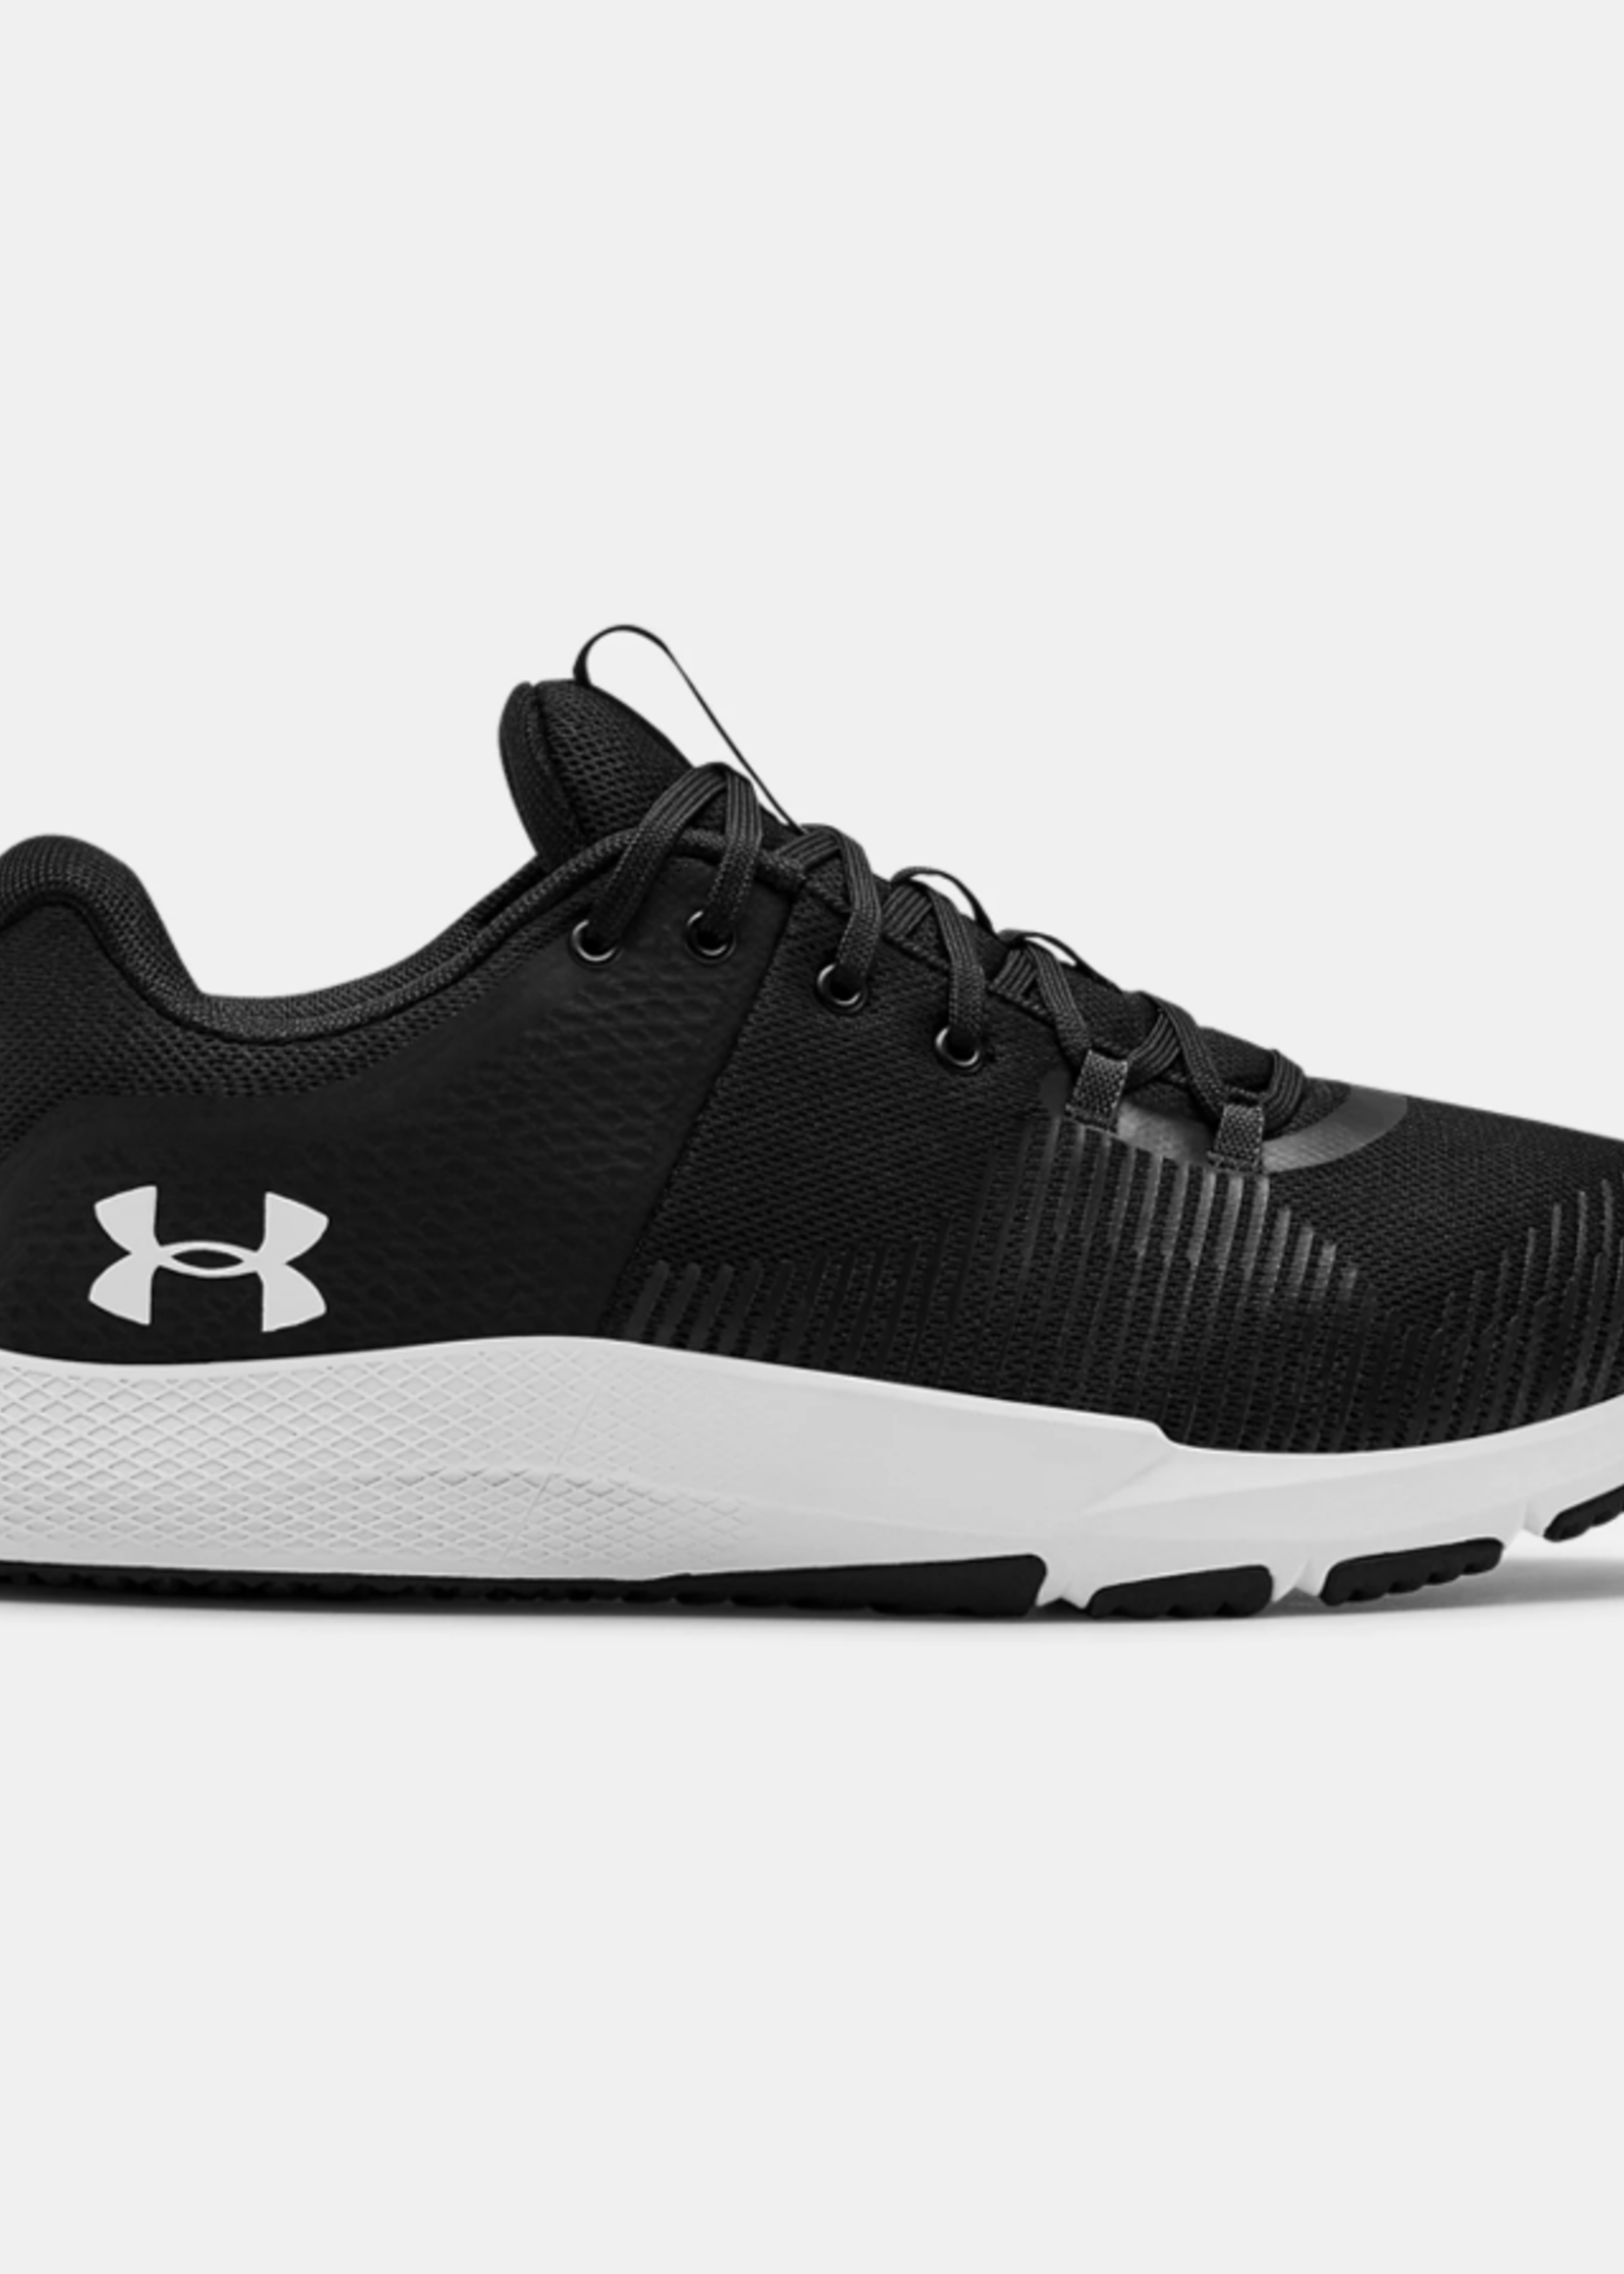 Under Armour MEN'S UA CHARGED ENGAGE TRAINING SHOES 3022616